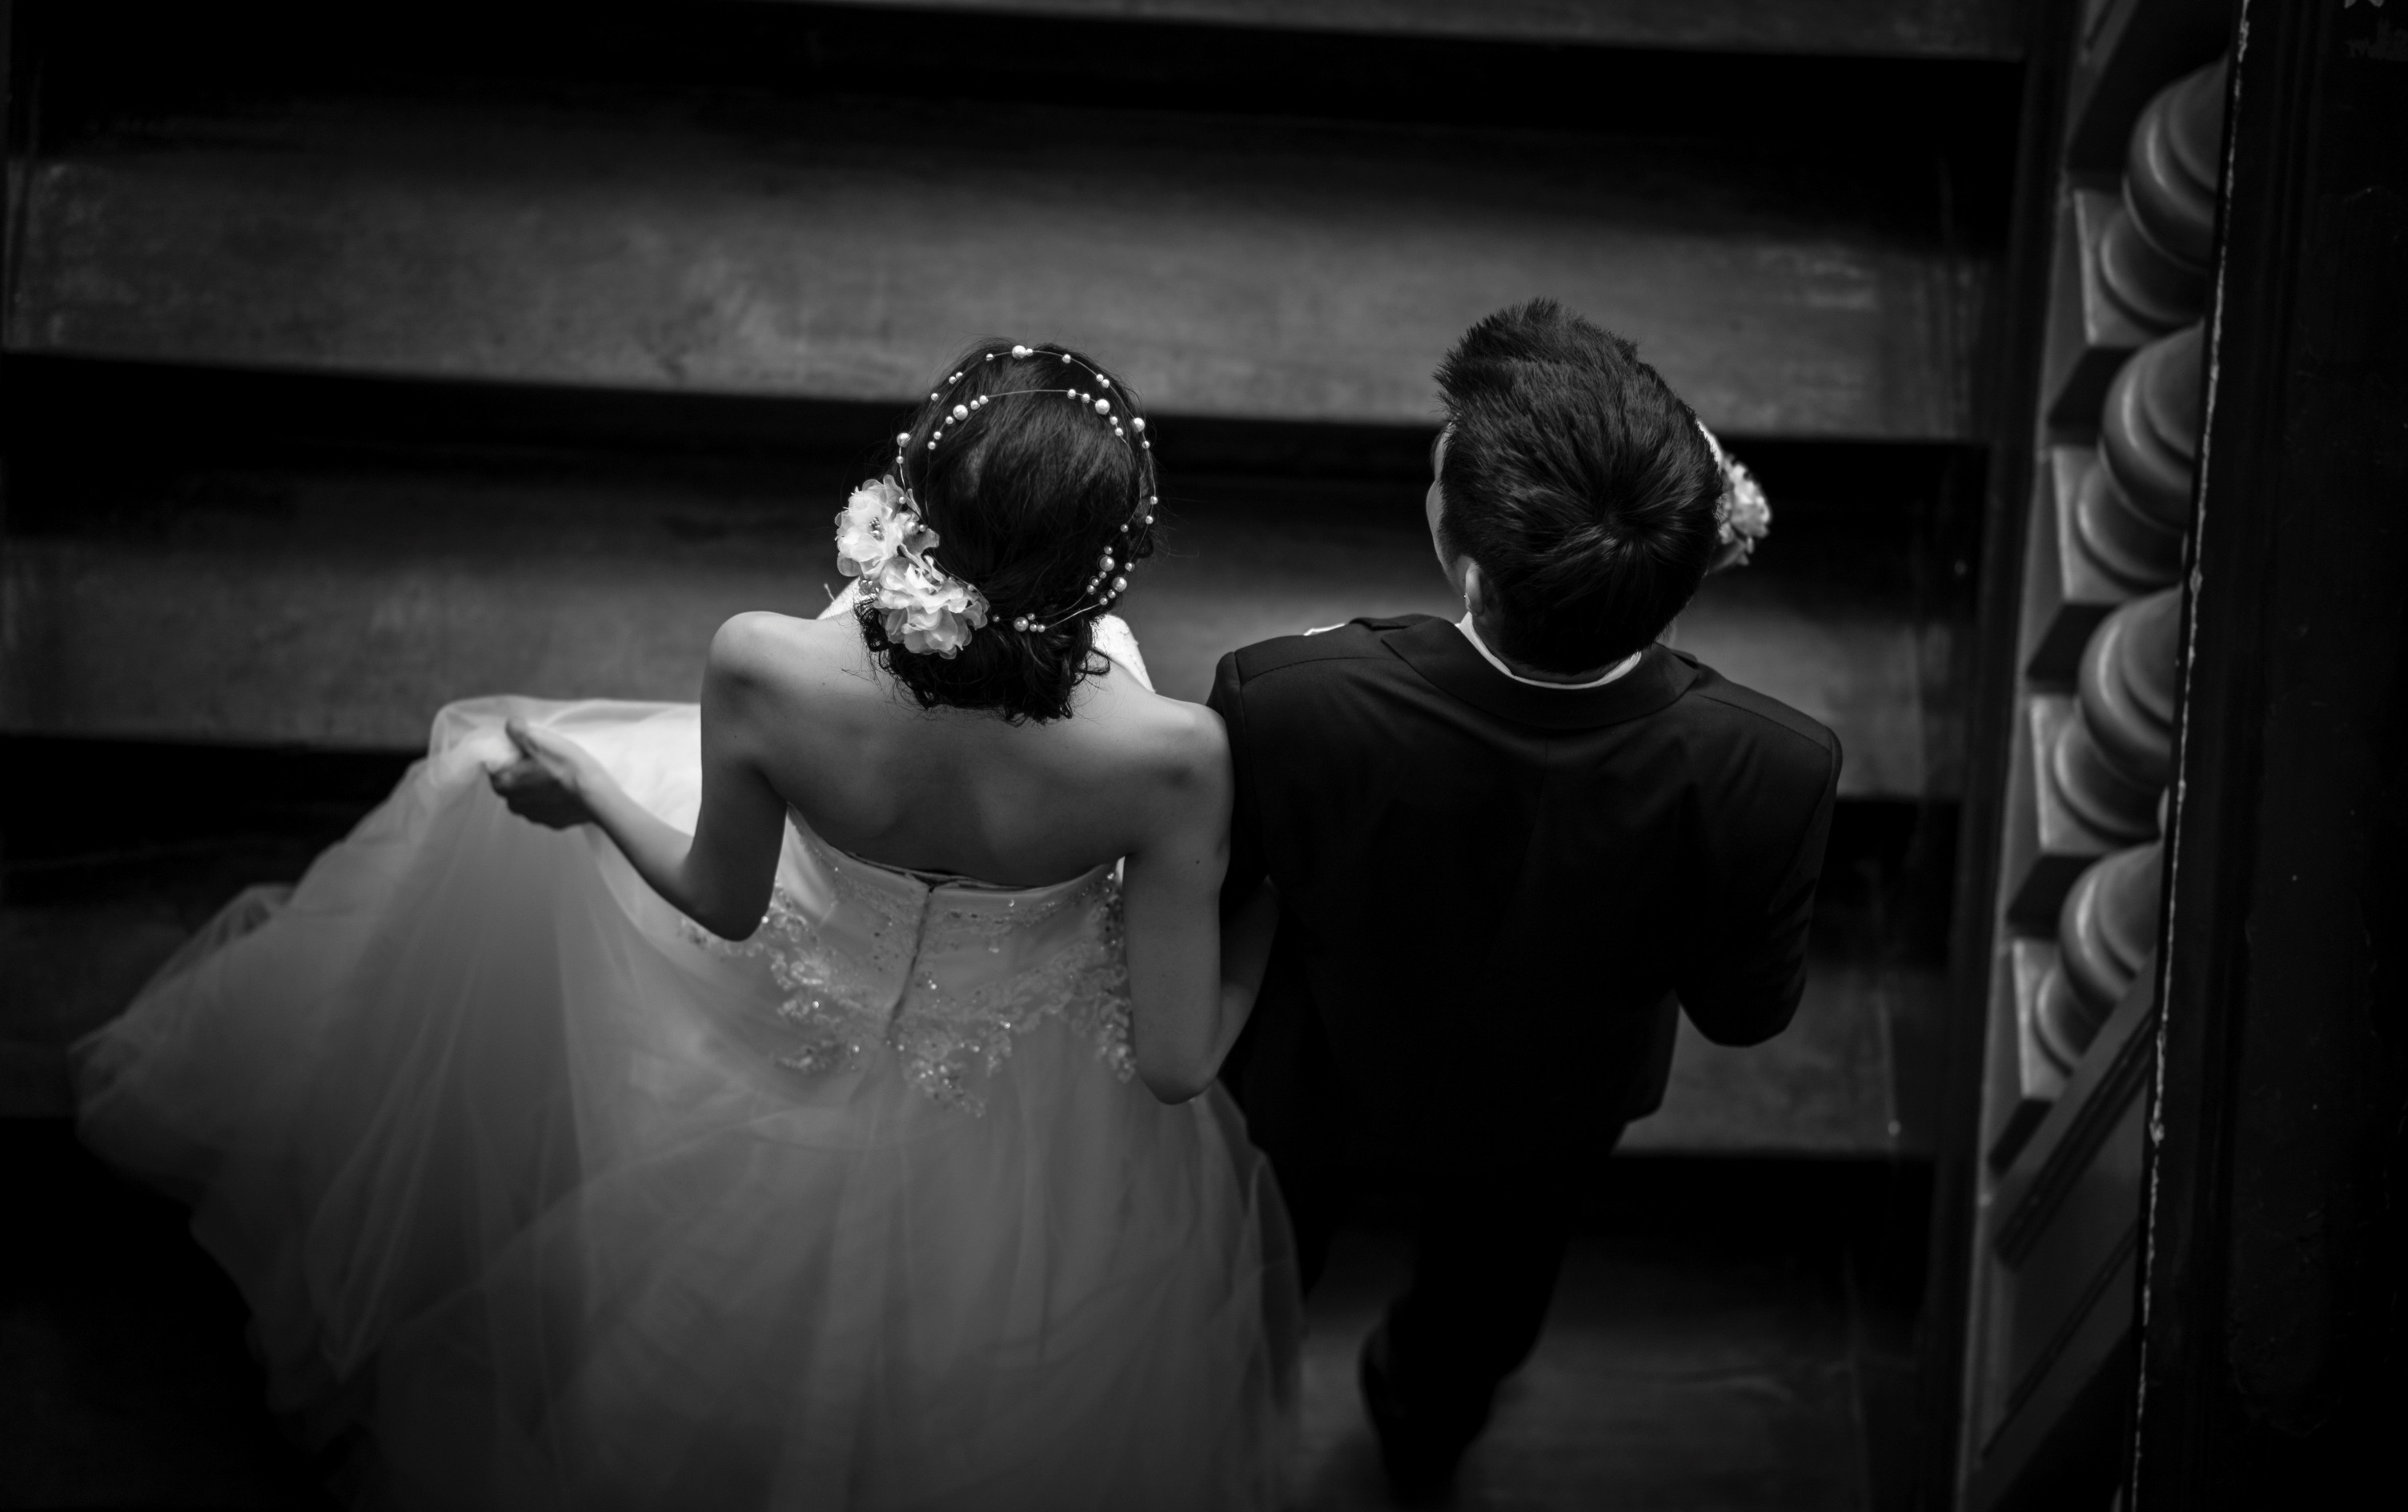 men-black-women-wedding-photography